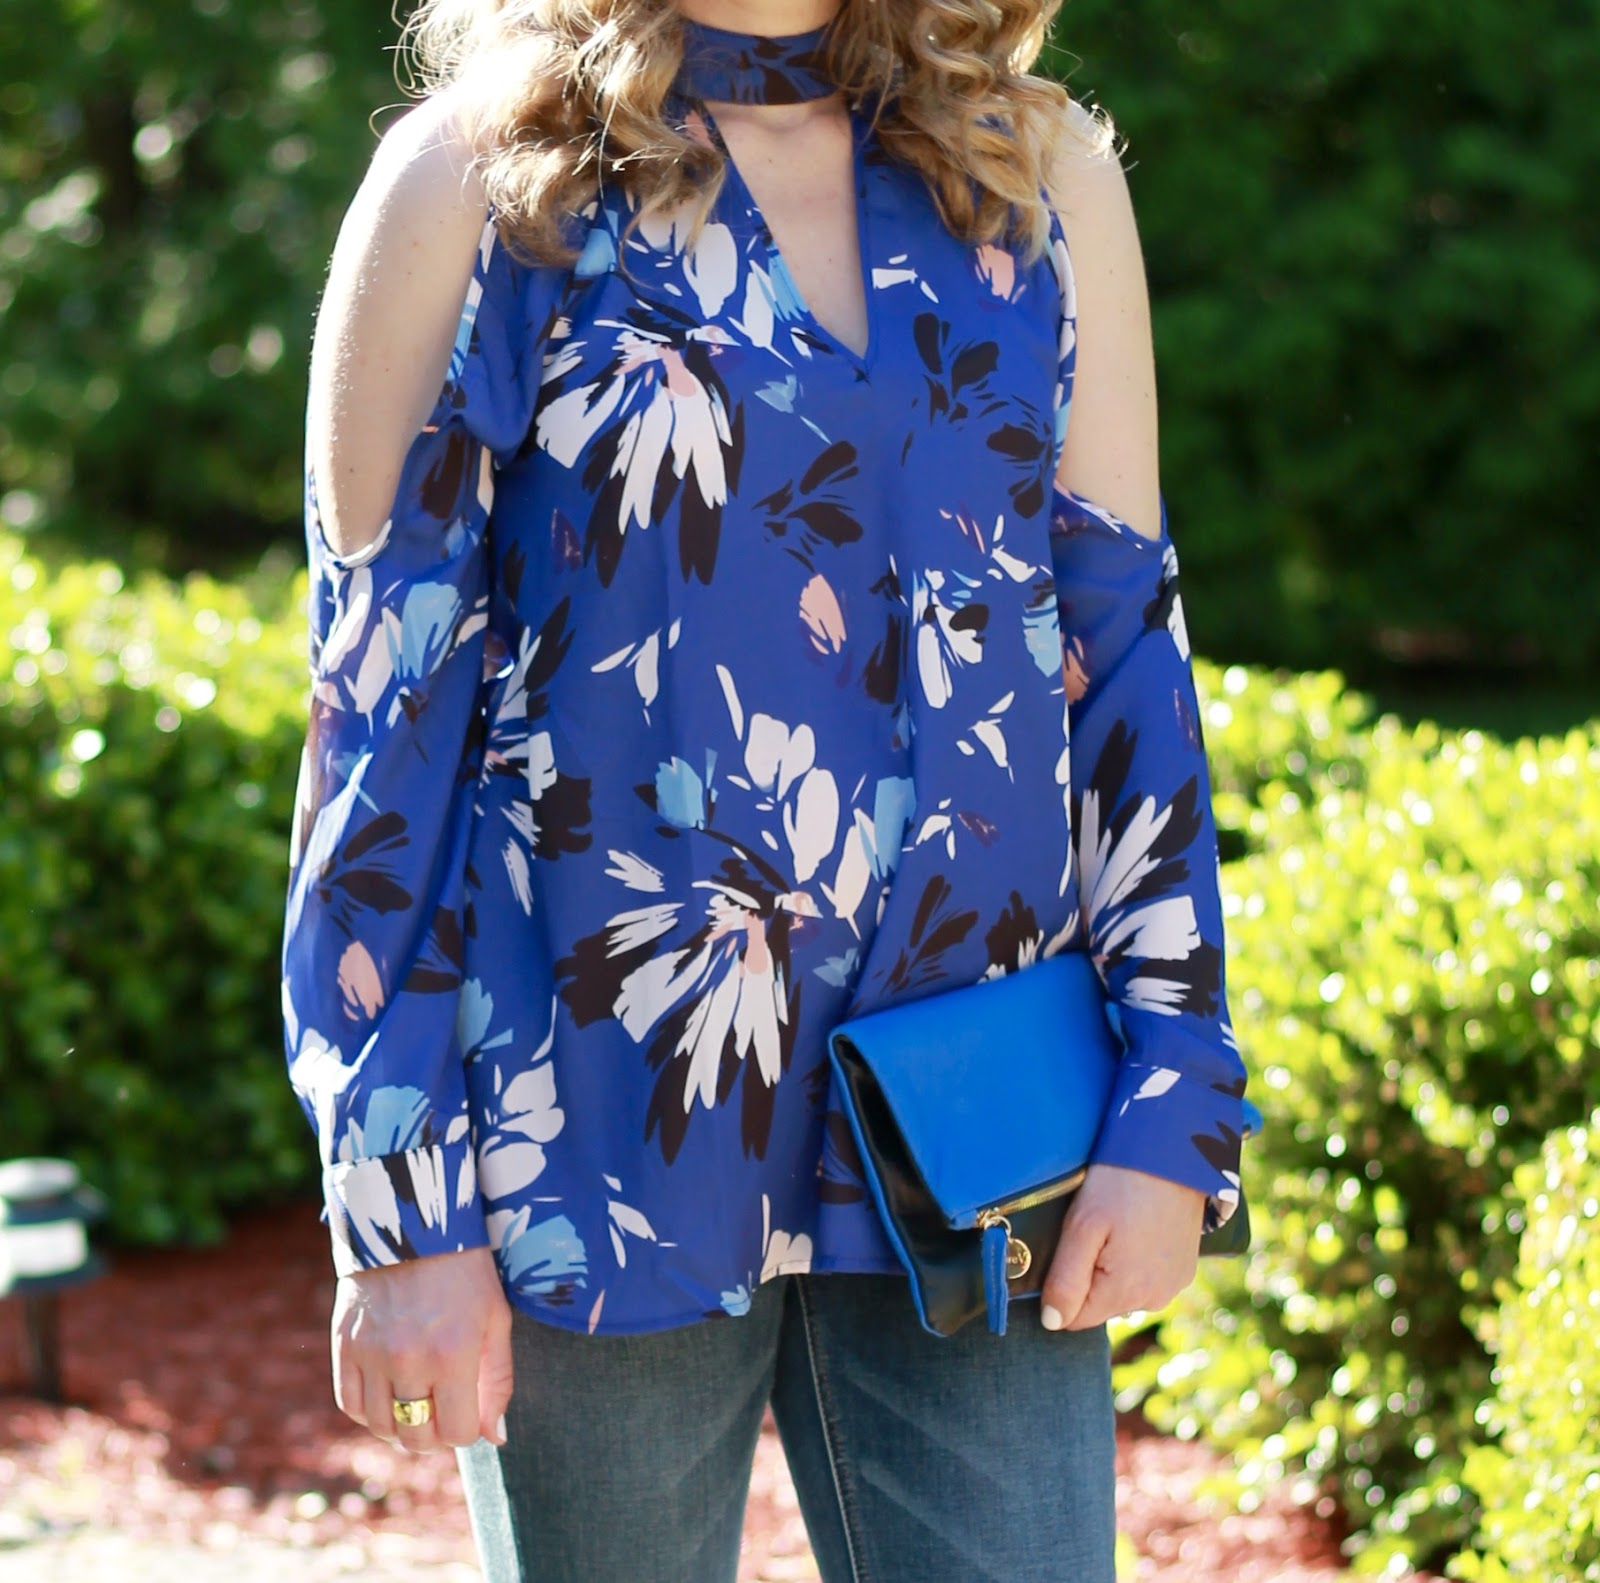 Jessica Simpson maternity jeans, grey studded flats, blue Clare V. fold over clutch, blue floral choker cold shoulder top